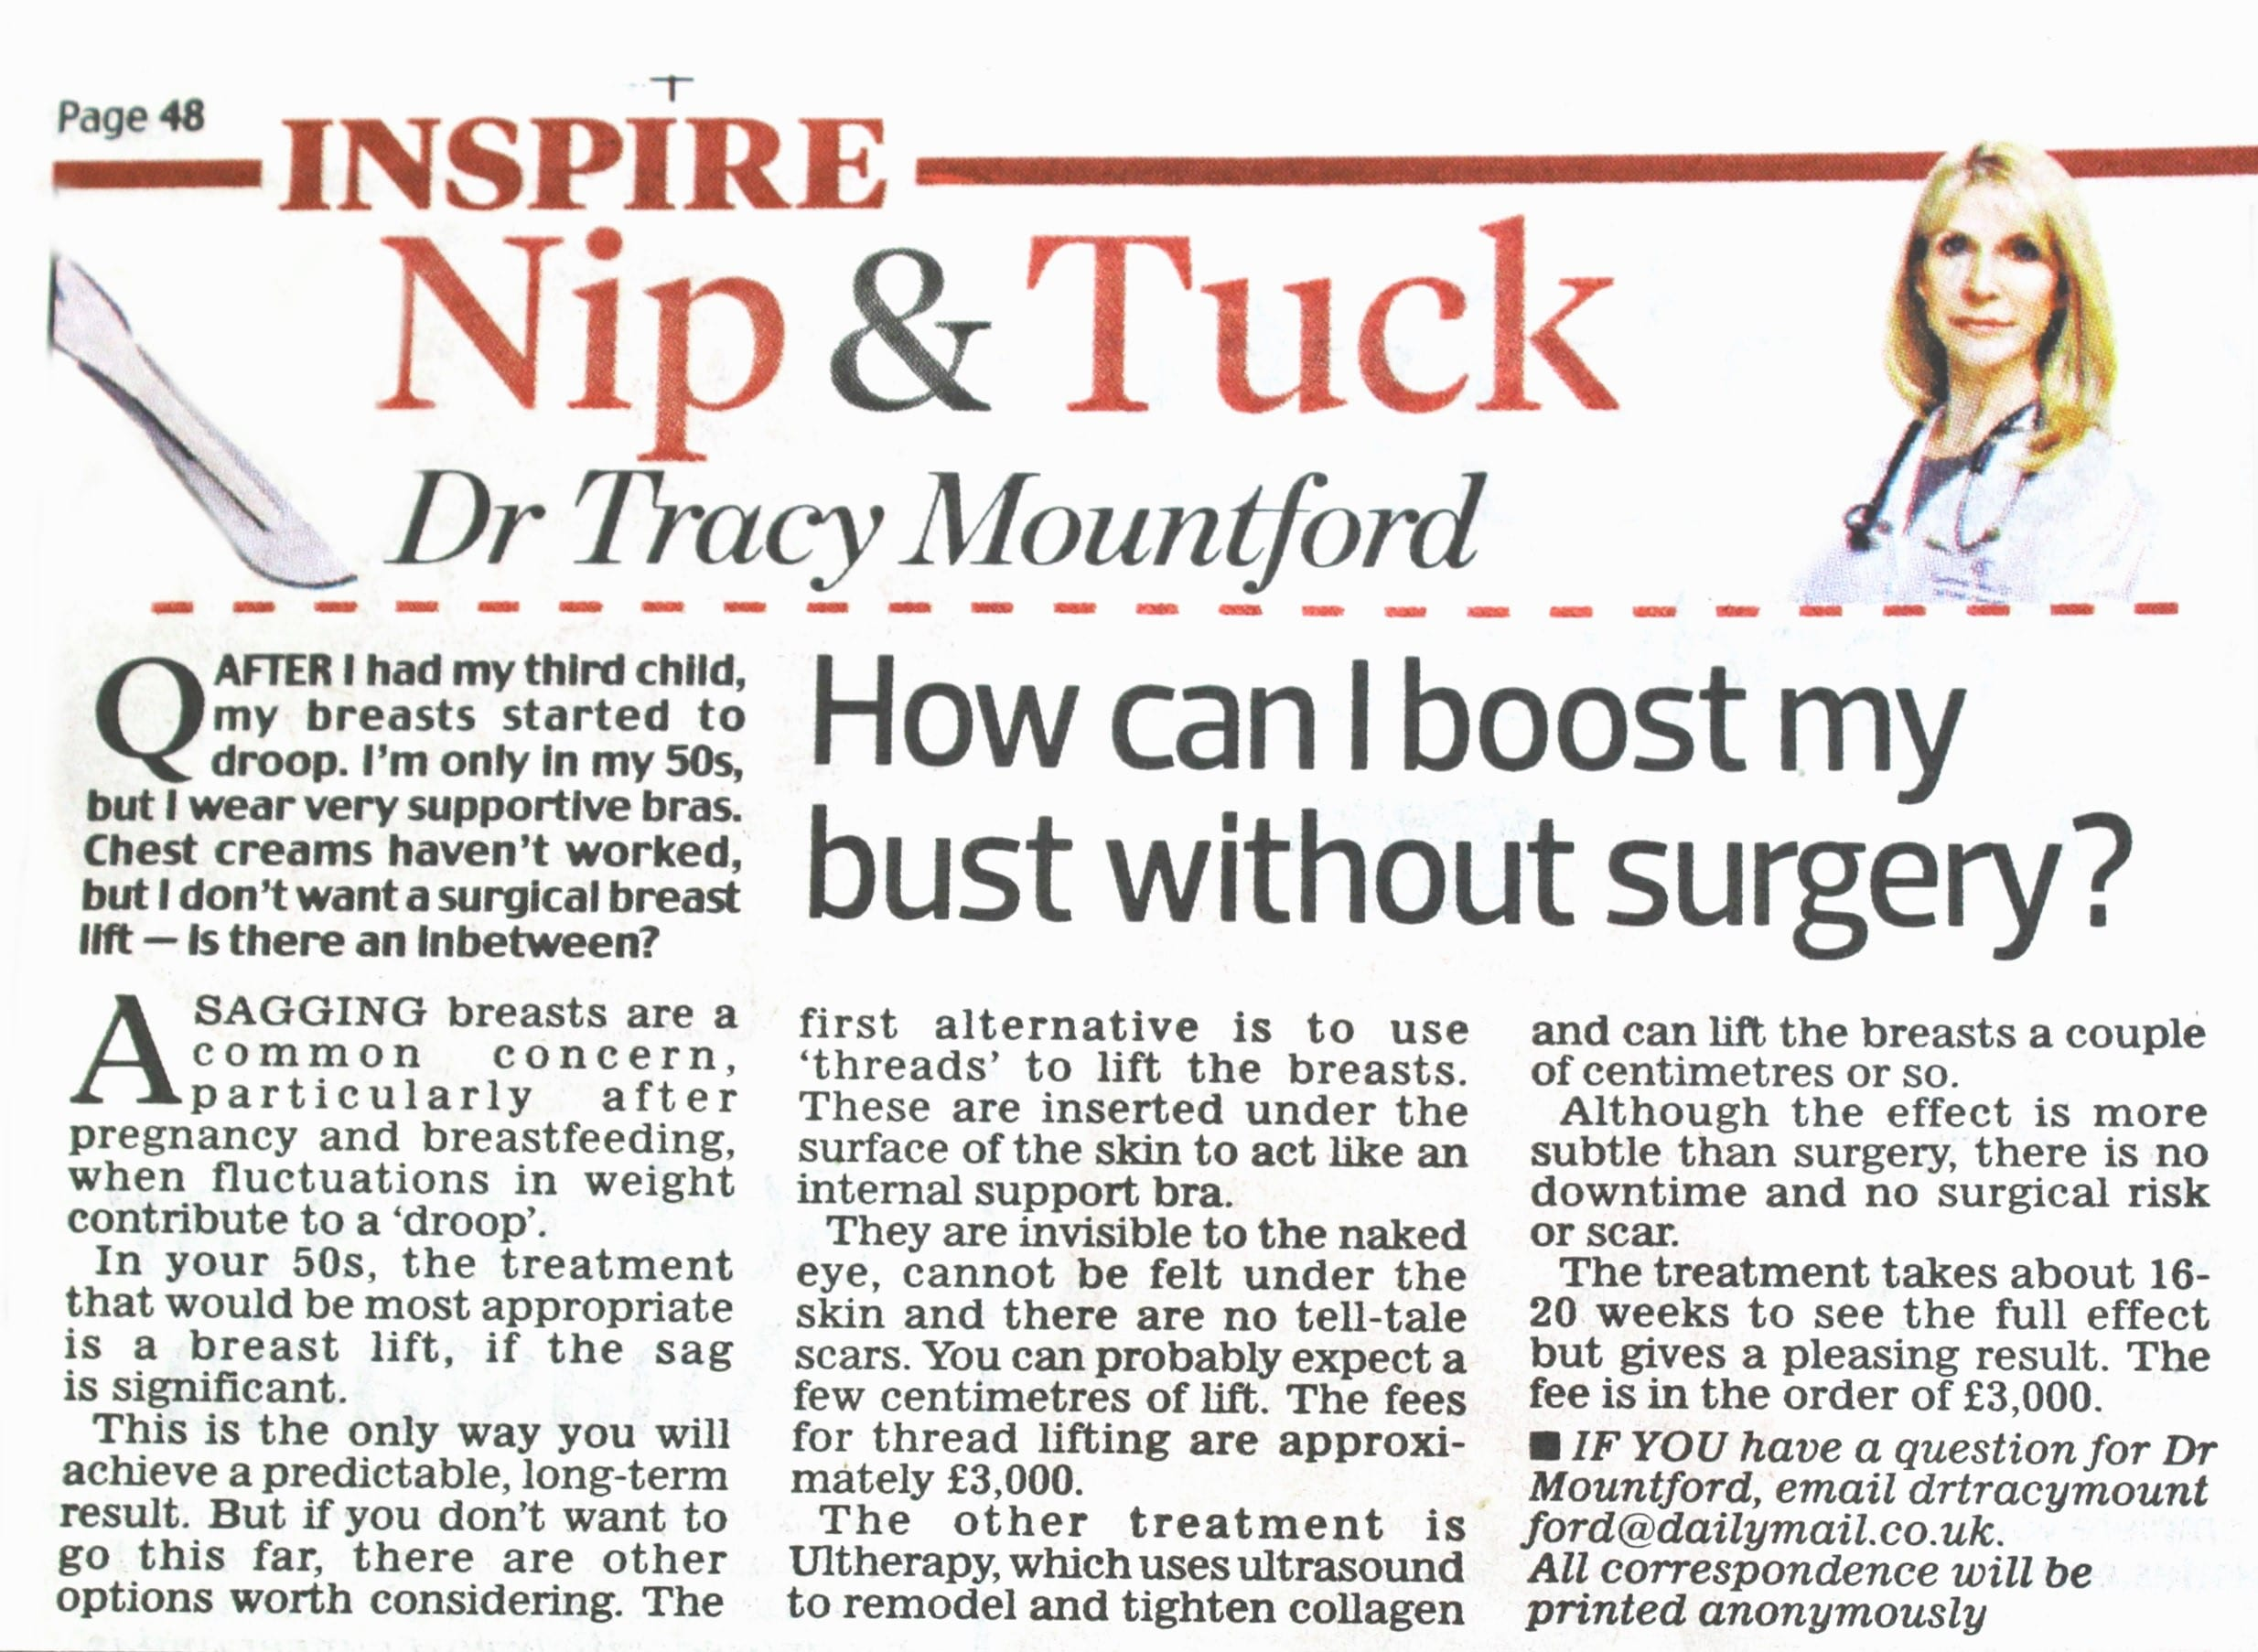 dail-mail-nip-and-tuck-10-October-2016-dr-tracy-mountford-non-surgical cosmetic treatments